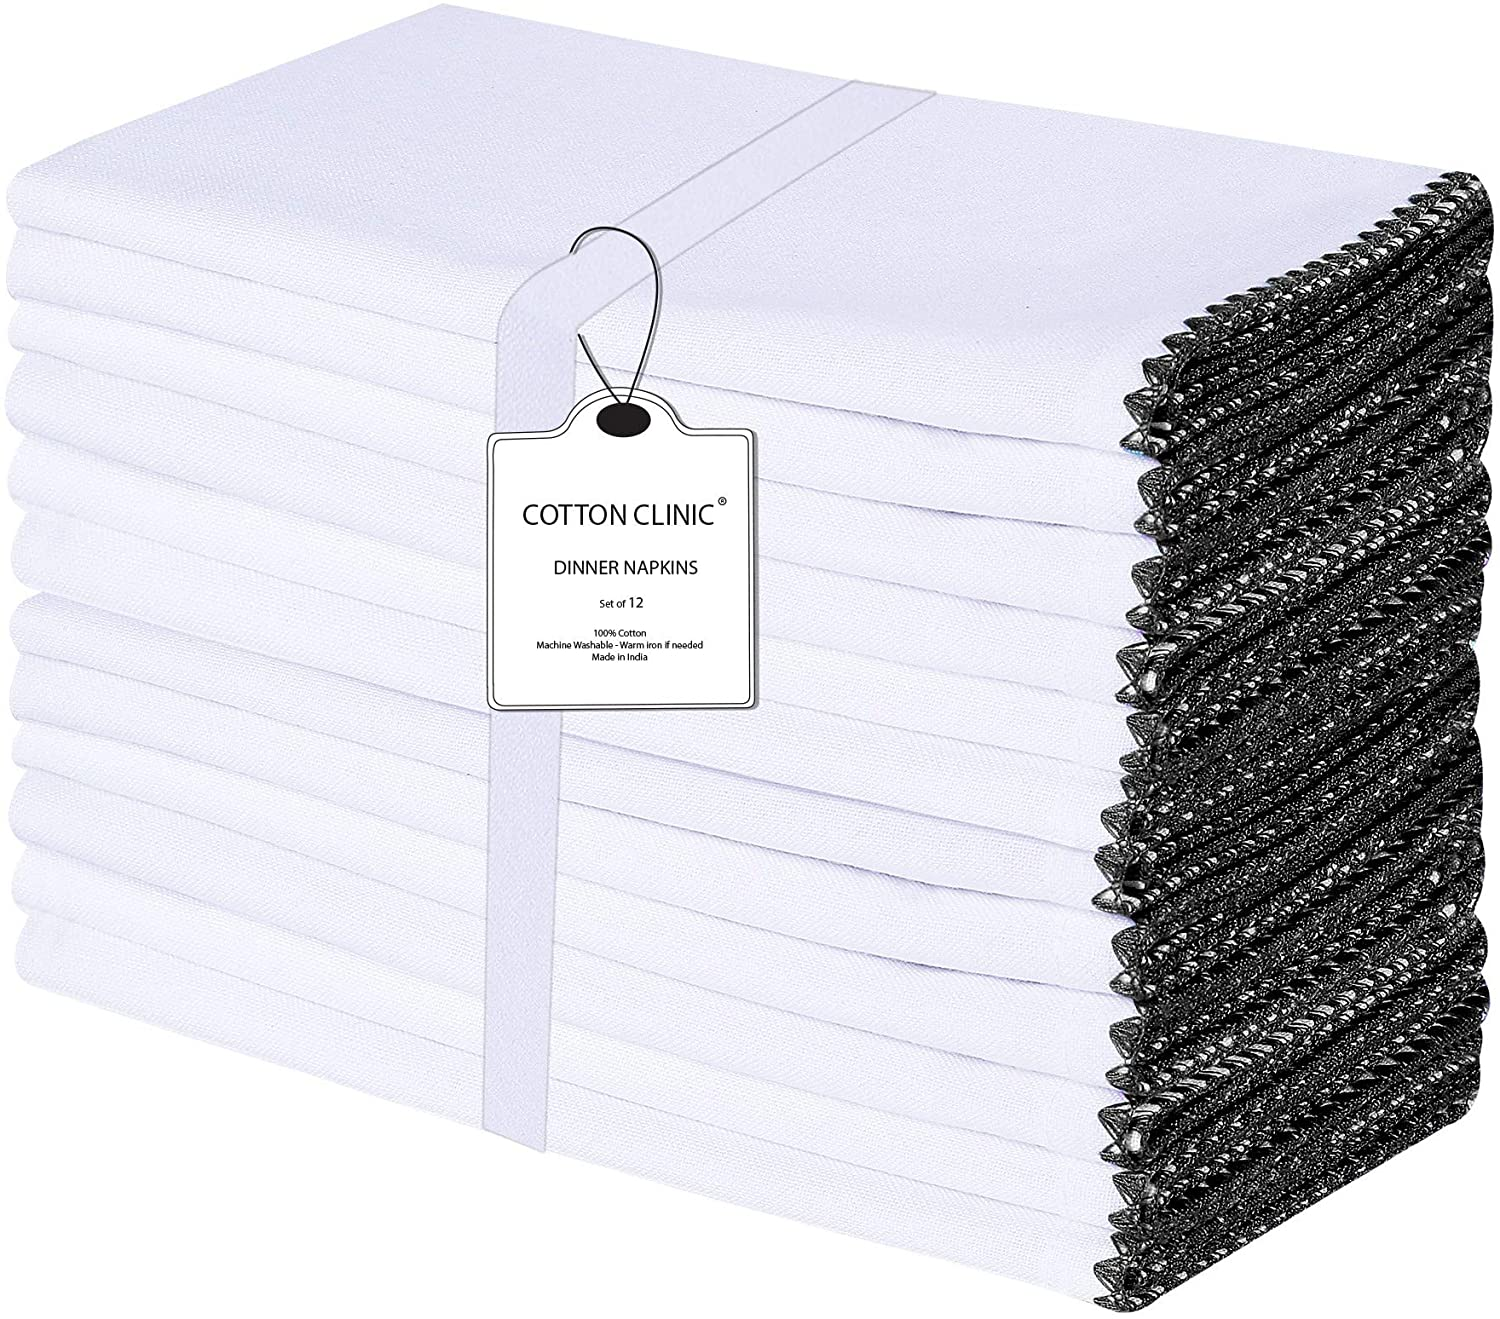 Cotton Clinic 12 Pack Blanket Stitch Farmhouse Vintage 20x20 Cloth Dinner Napkins, 100% Cotton Soft, Durable and Washable Cocktail Napkins, Wedding Dinner Napkins, Black White